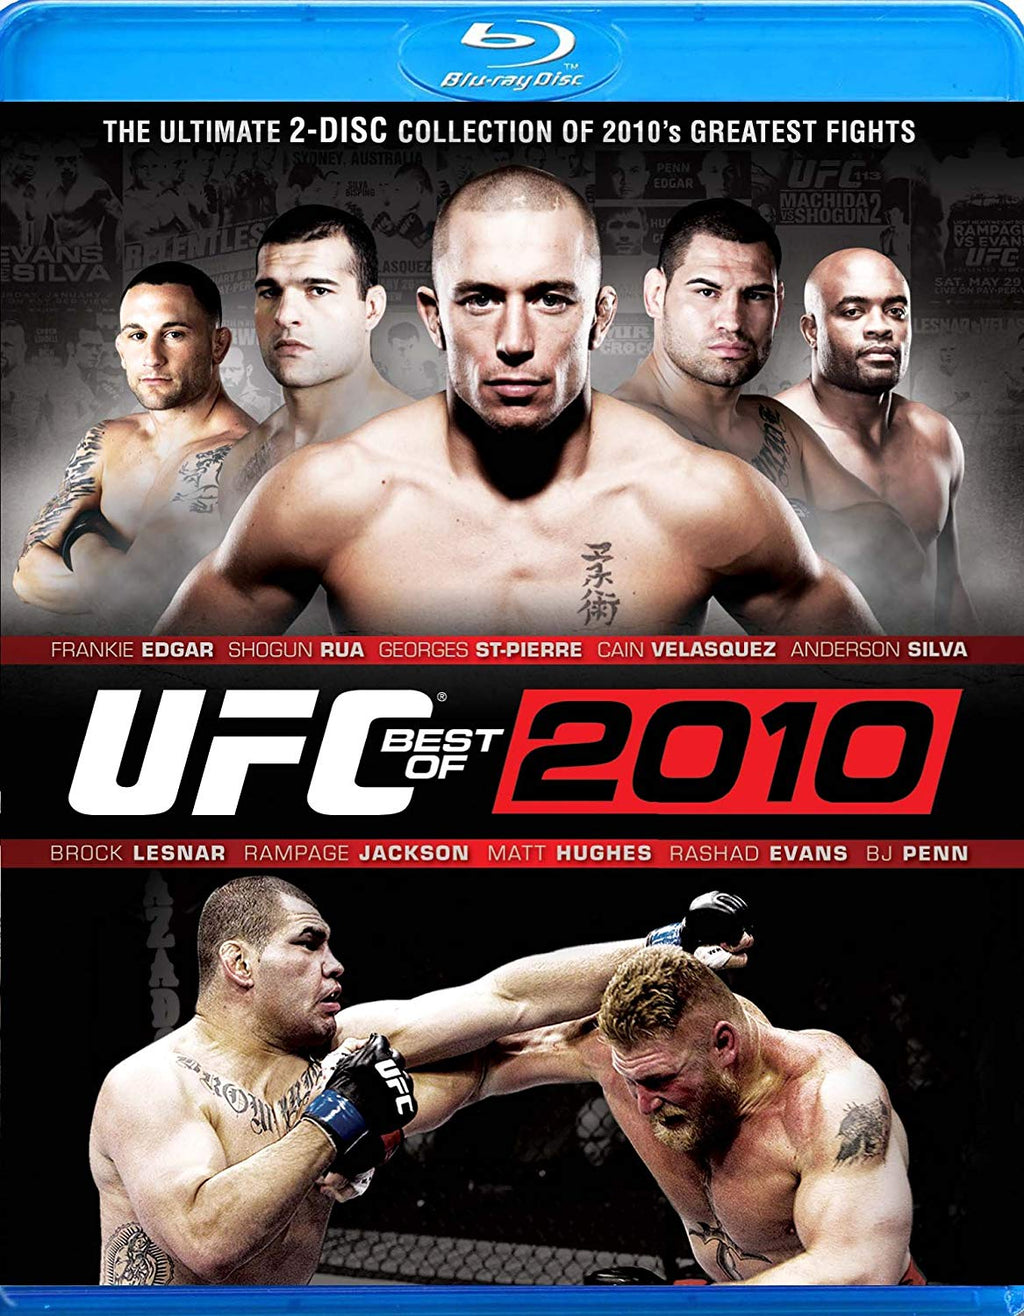 UFC: Best of 2010 Blu-ray